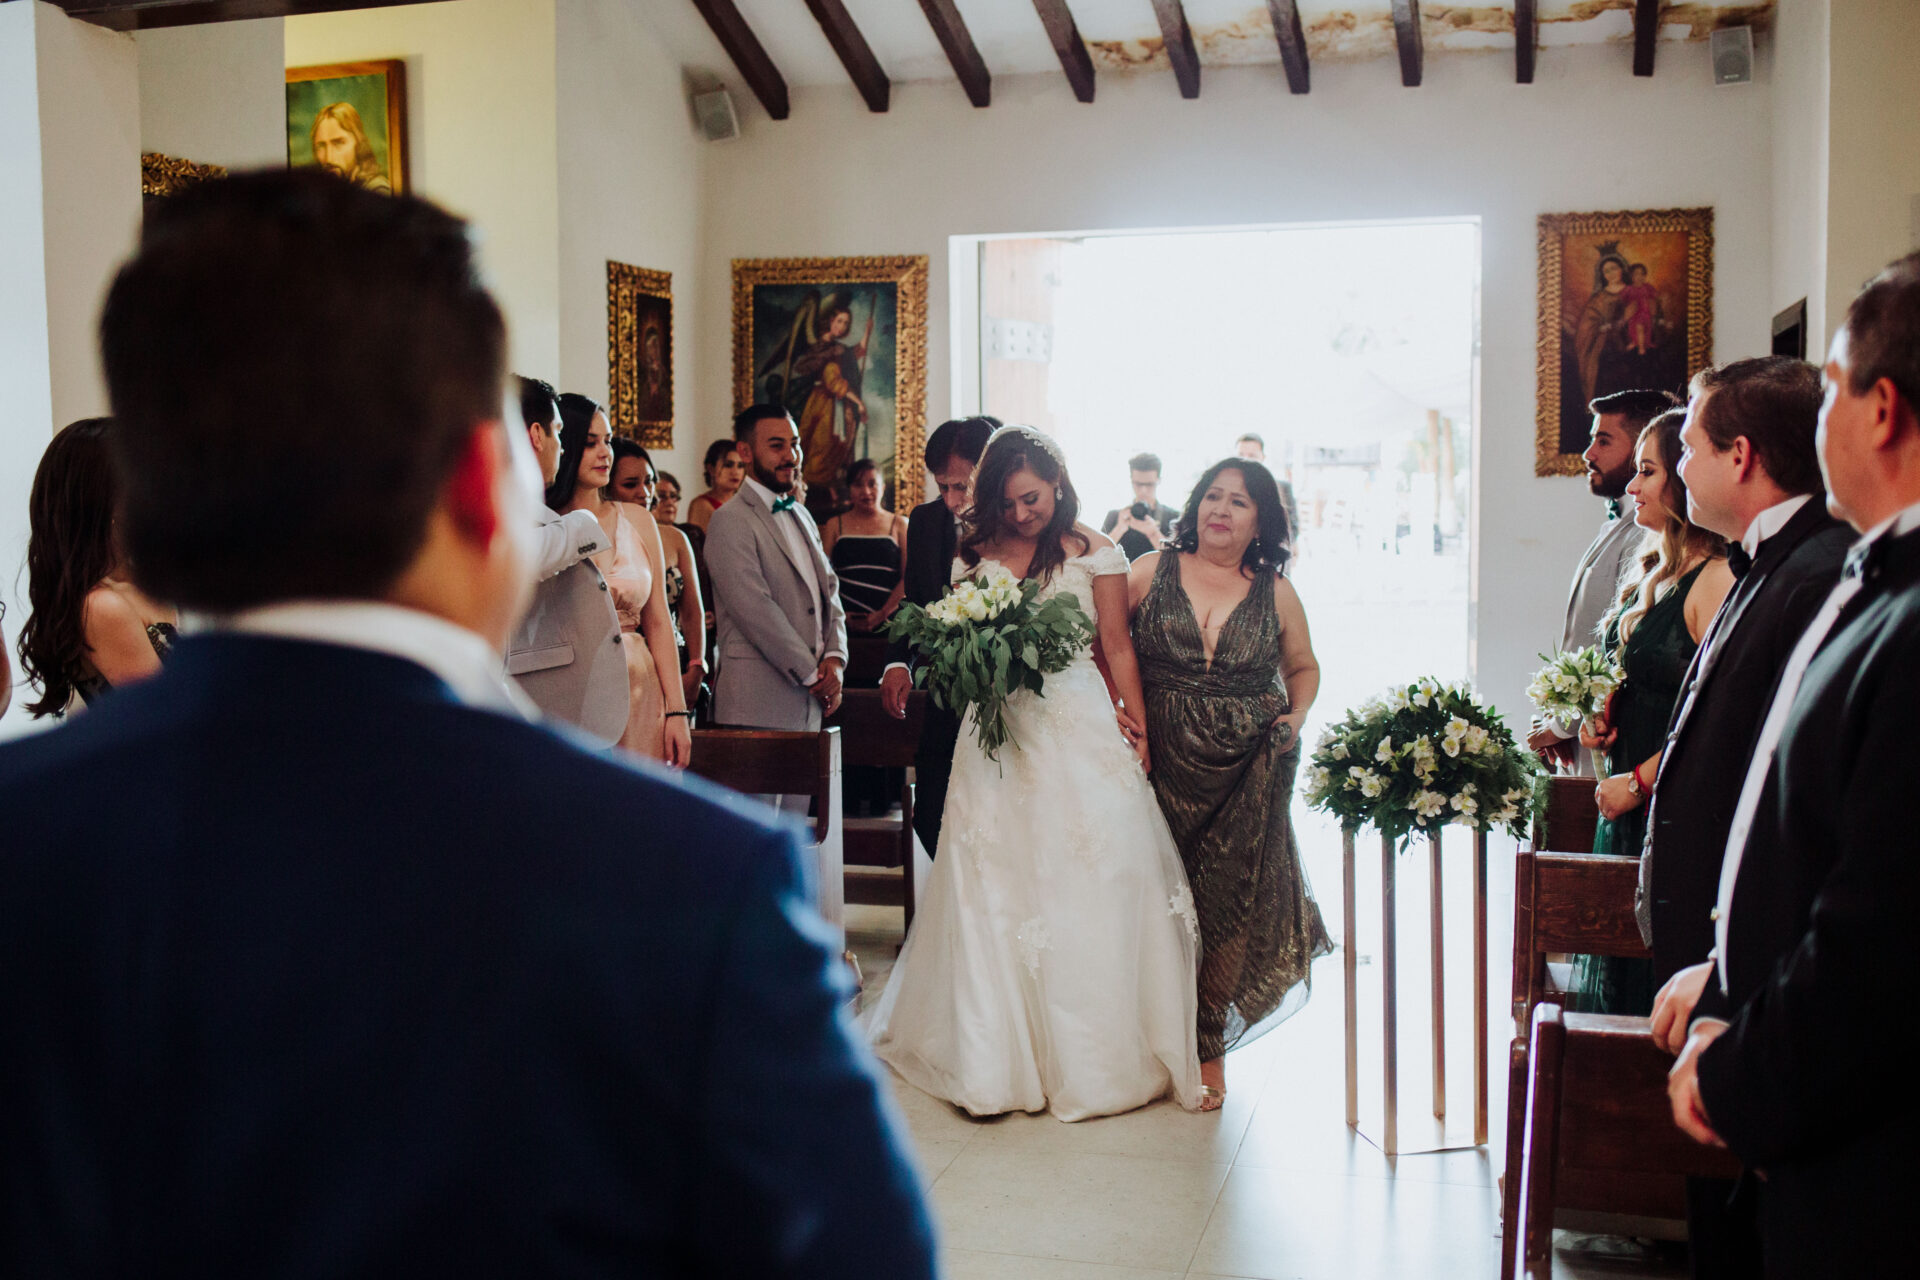 javier_noriega_fotografo_bodas_torreon_coahuila_zacatecas_wedding_photographer27a